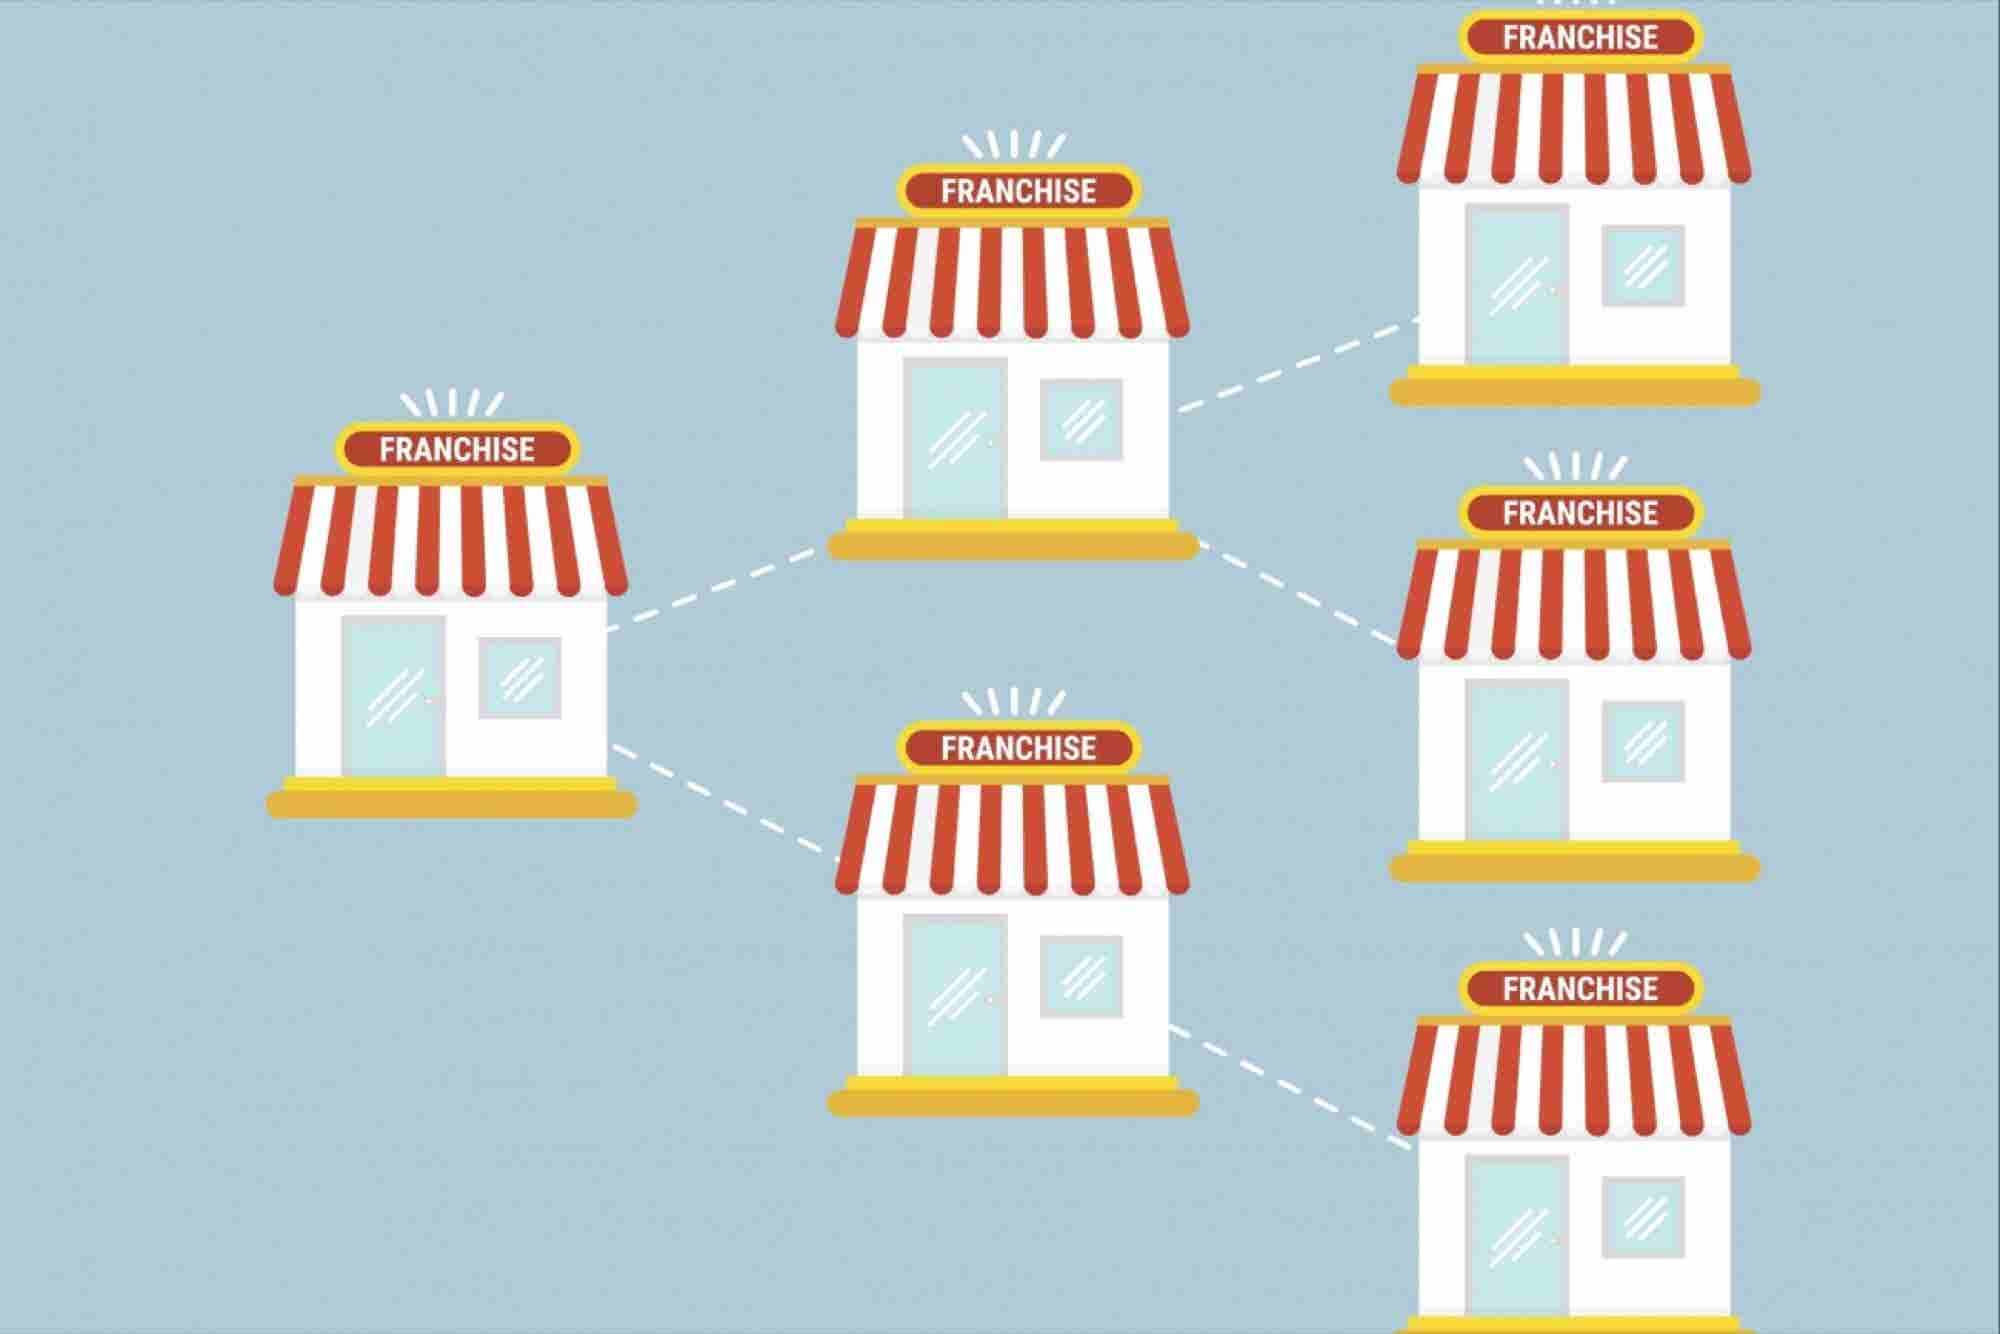 Want to Buy a Franchise? Here's Your Step By Step Guide